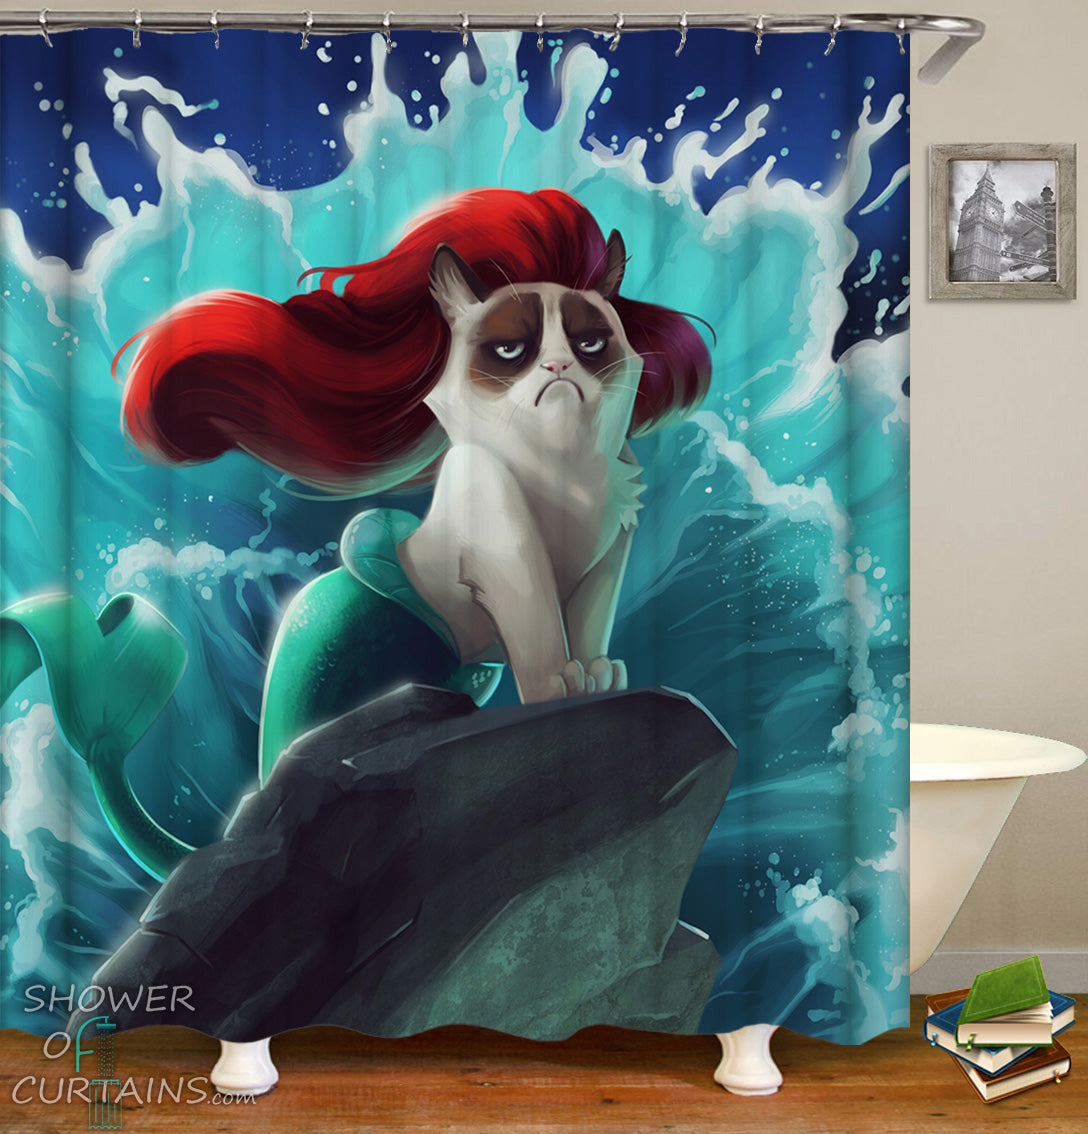 Shower Curtains Mermaid Cat Shower Of Curtains